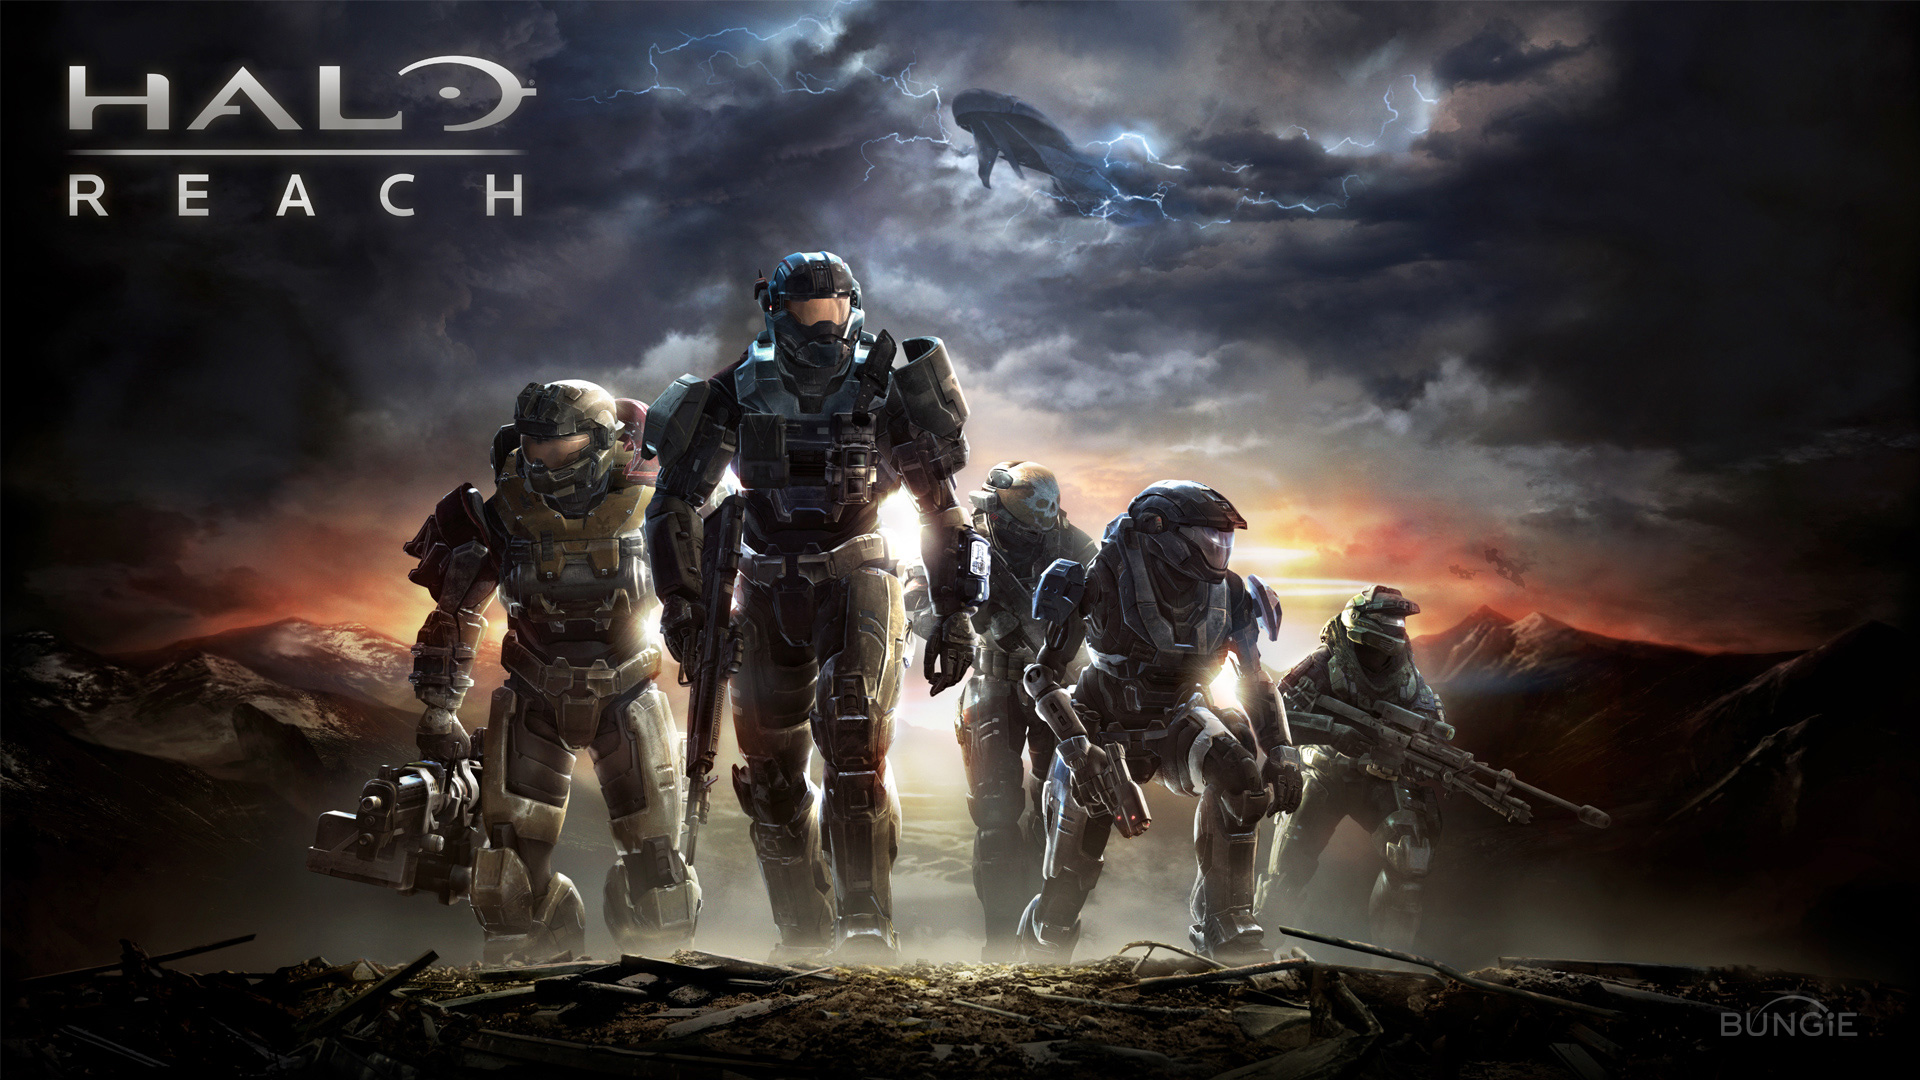 Halo-reach_cover